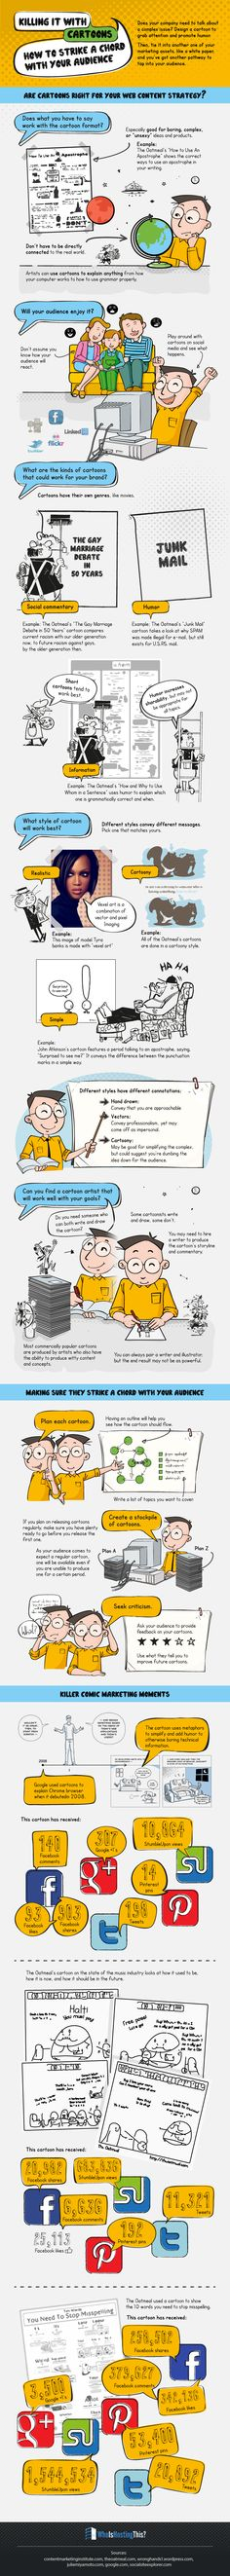 Killing it with cartoons: How to strike a chord with your audience #contentmarketing #infographic #socialmedia